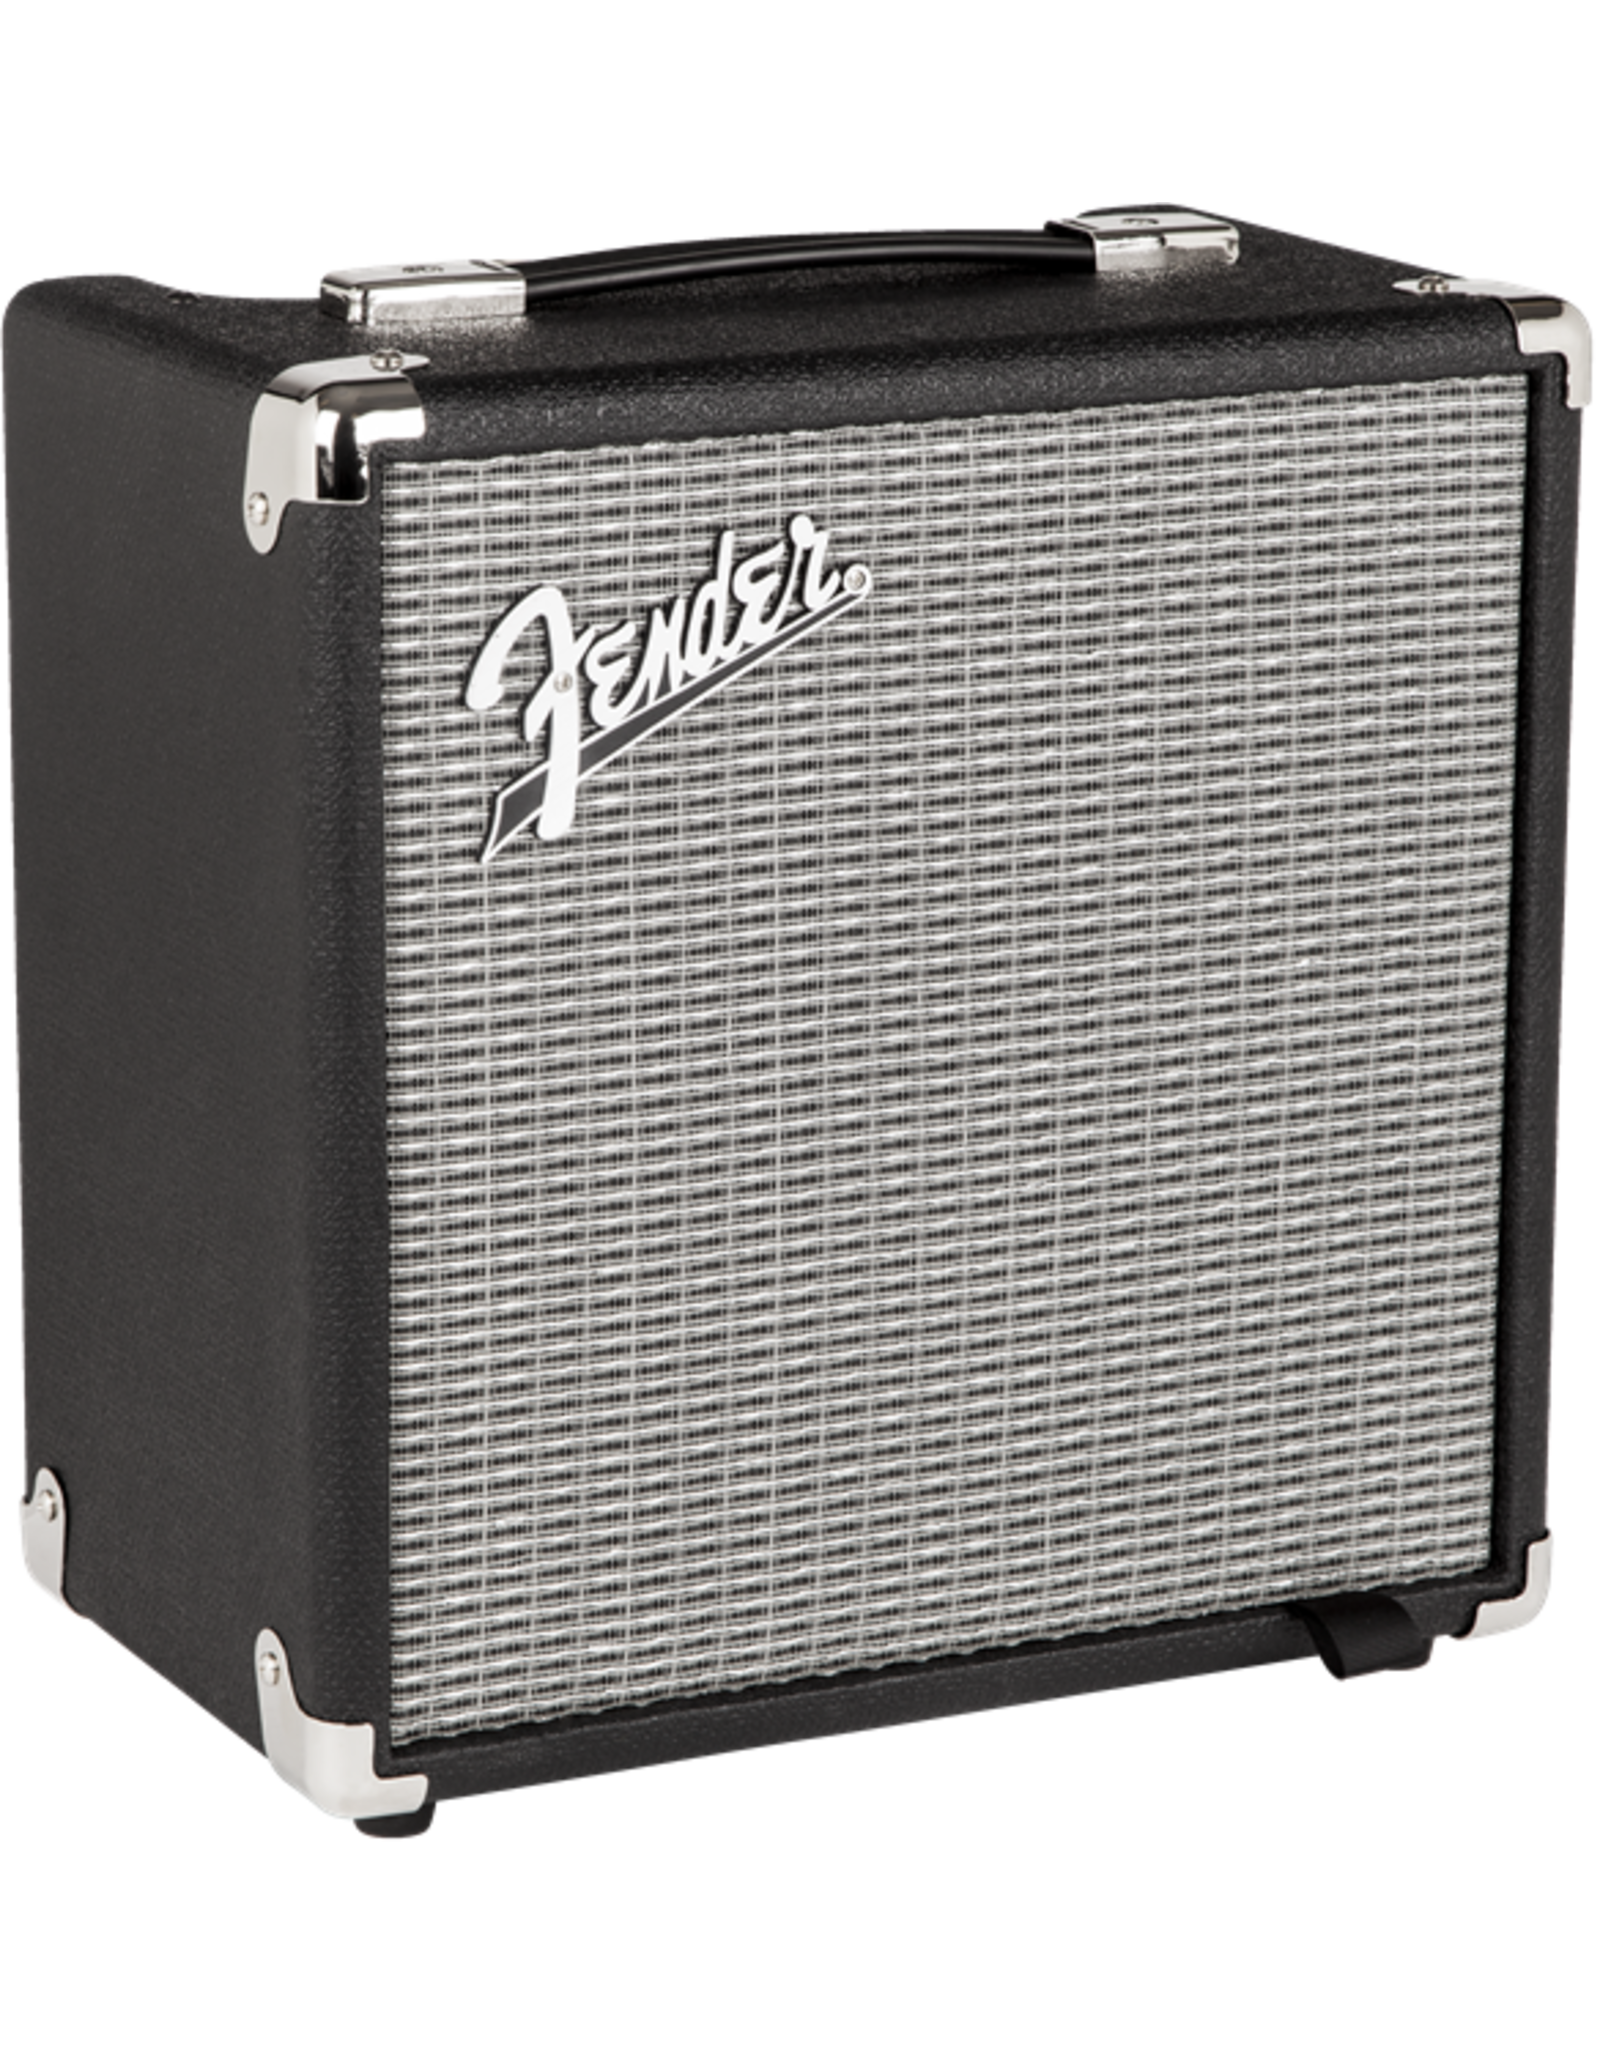 Fender Fender RUMBLE 15 V3